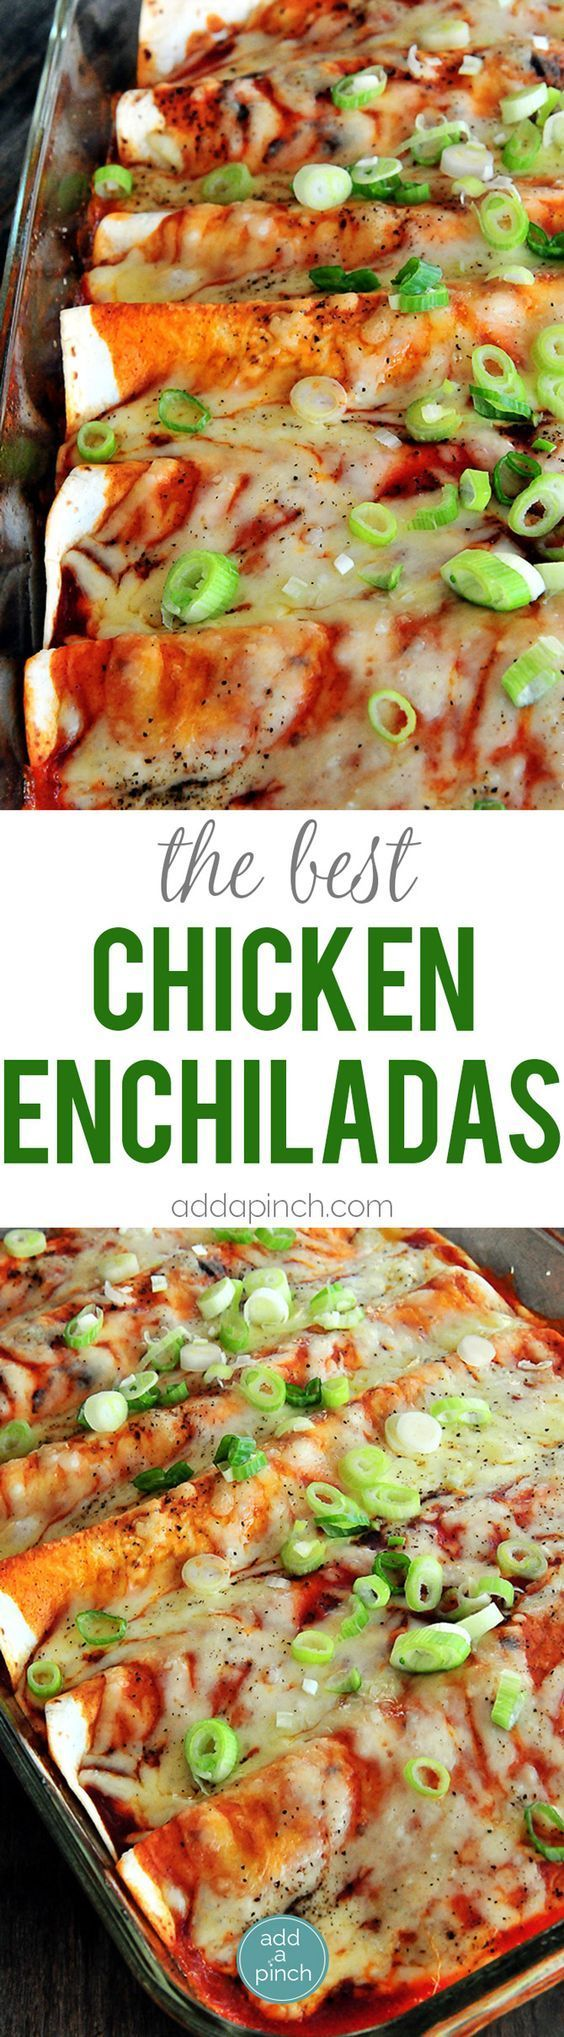 Chicken Enchiladas Recipe - Chicken Enchiladas make a perfect weeknight meal! Seriously the BEST chicken enchilada recipe and one the whole family will love! It will become a favorite!